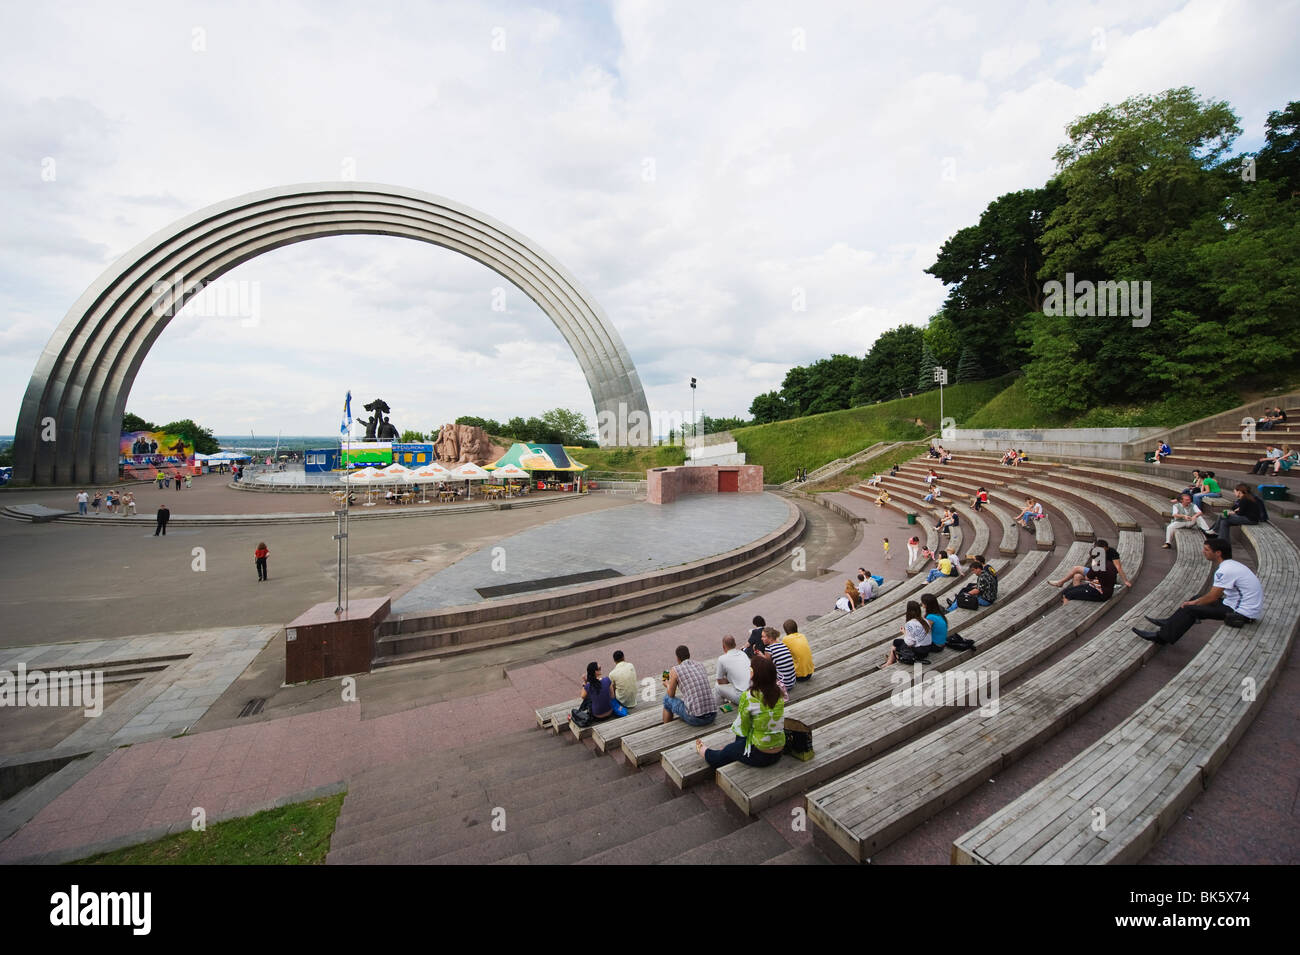 Rainbow Arch, Friendship of Nations Monument, Kiev, Ukraine, Europe - Stock Image